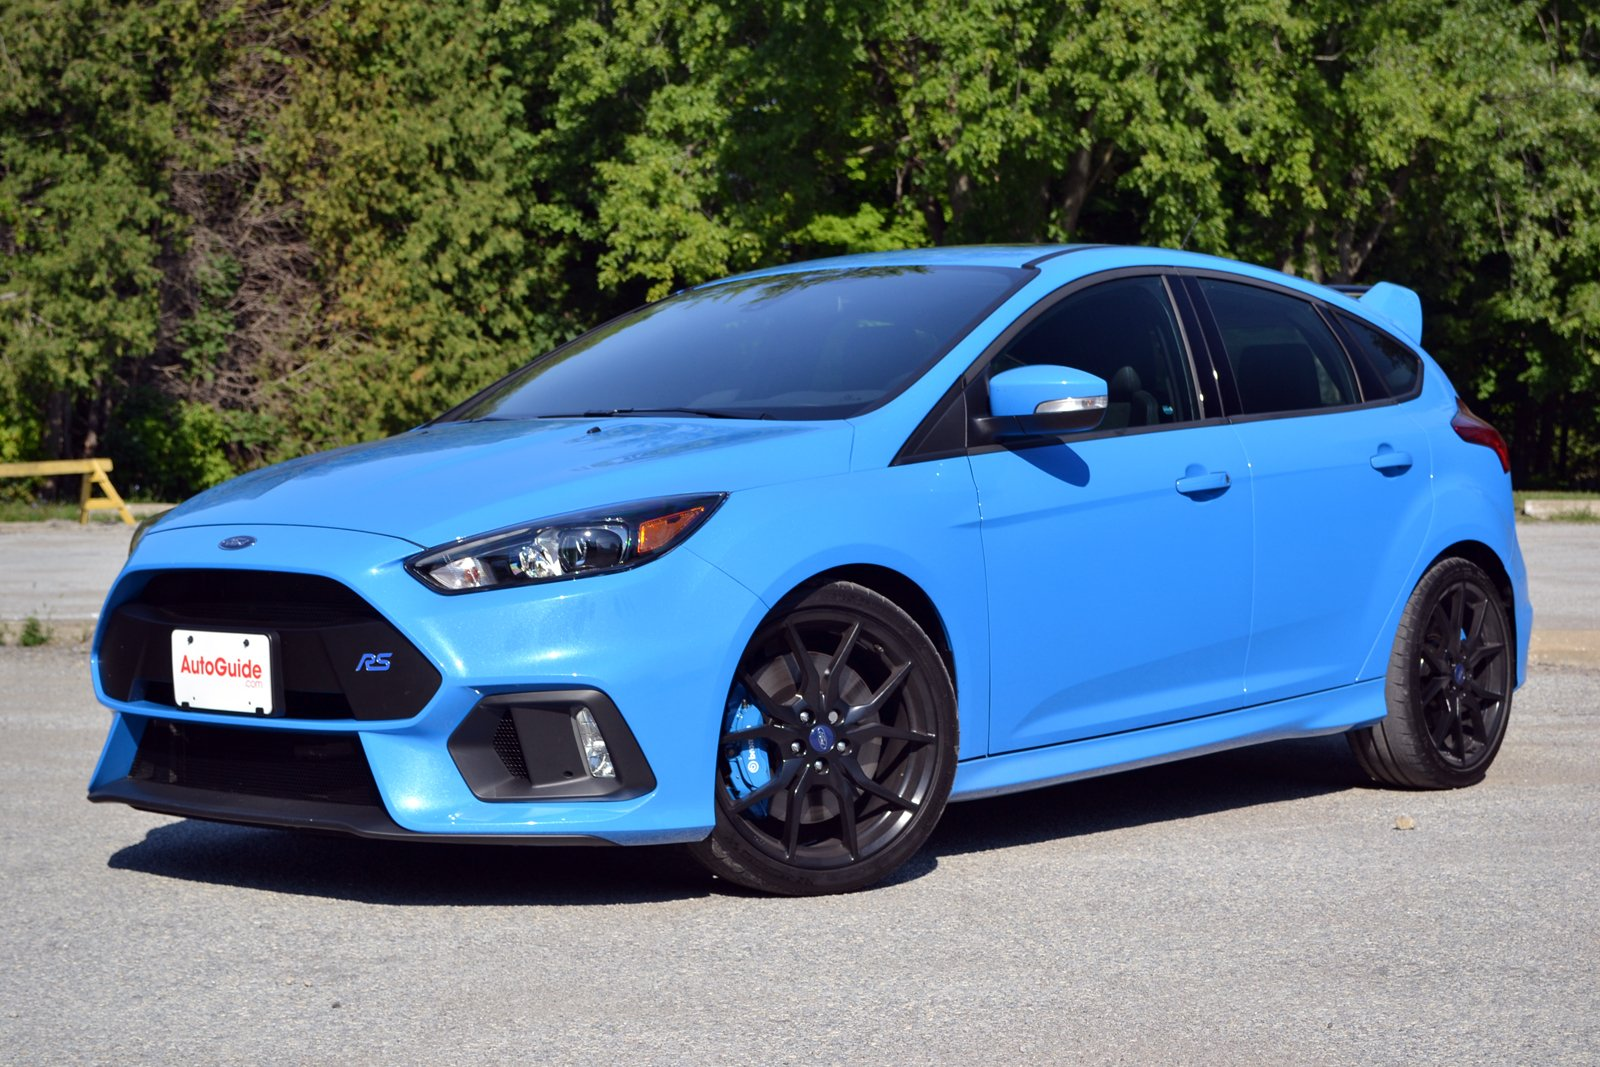 focus photos ford new rs hatchback ratings exterior base price coupe safety reviews